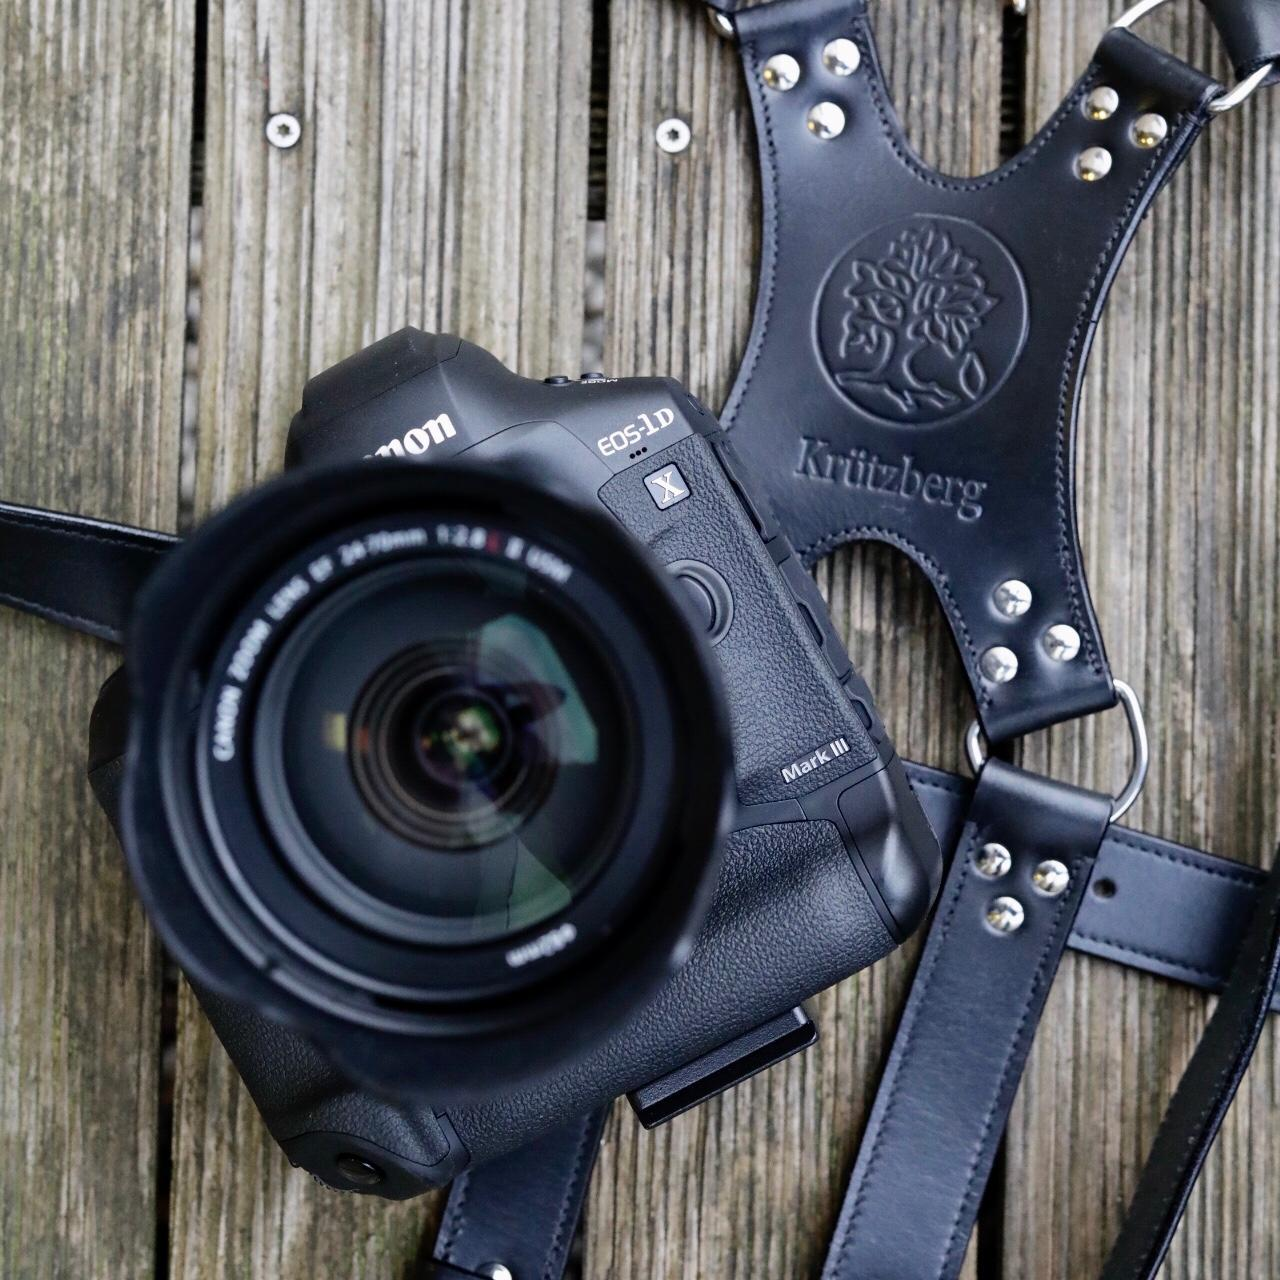 Canon EOS 1Dx III with the Krützberg Camera Harness System